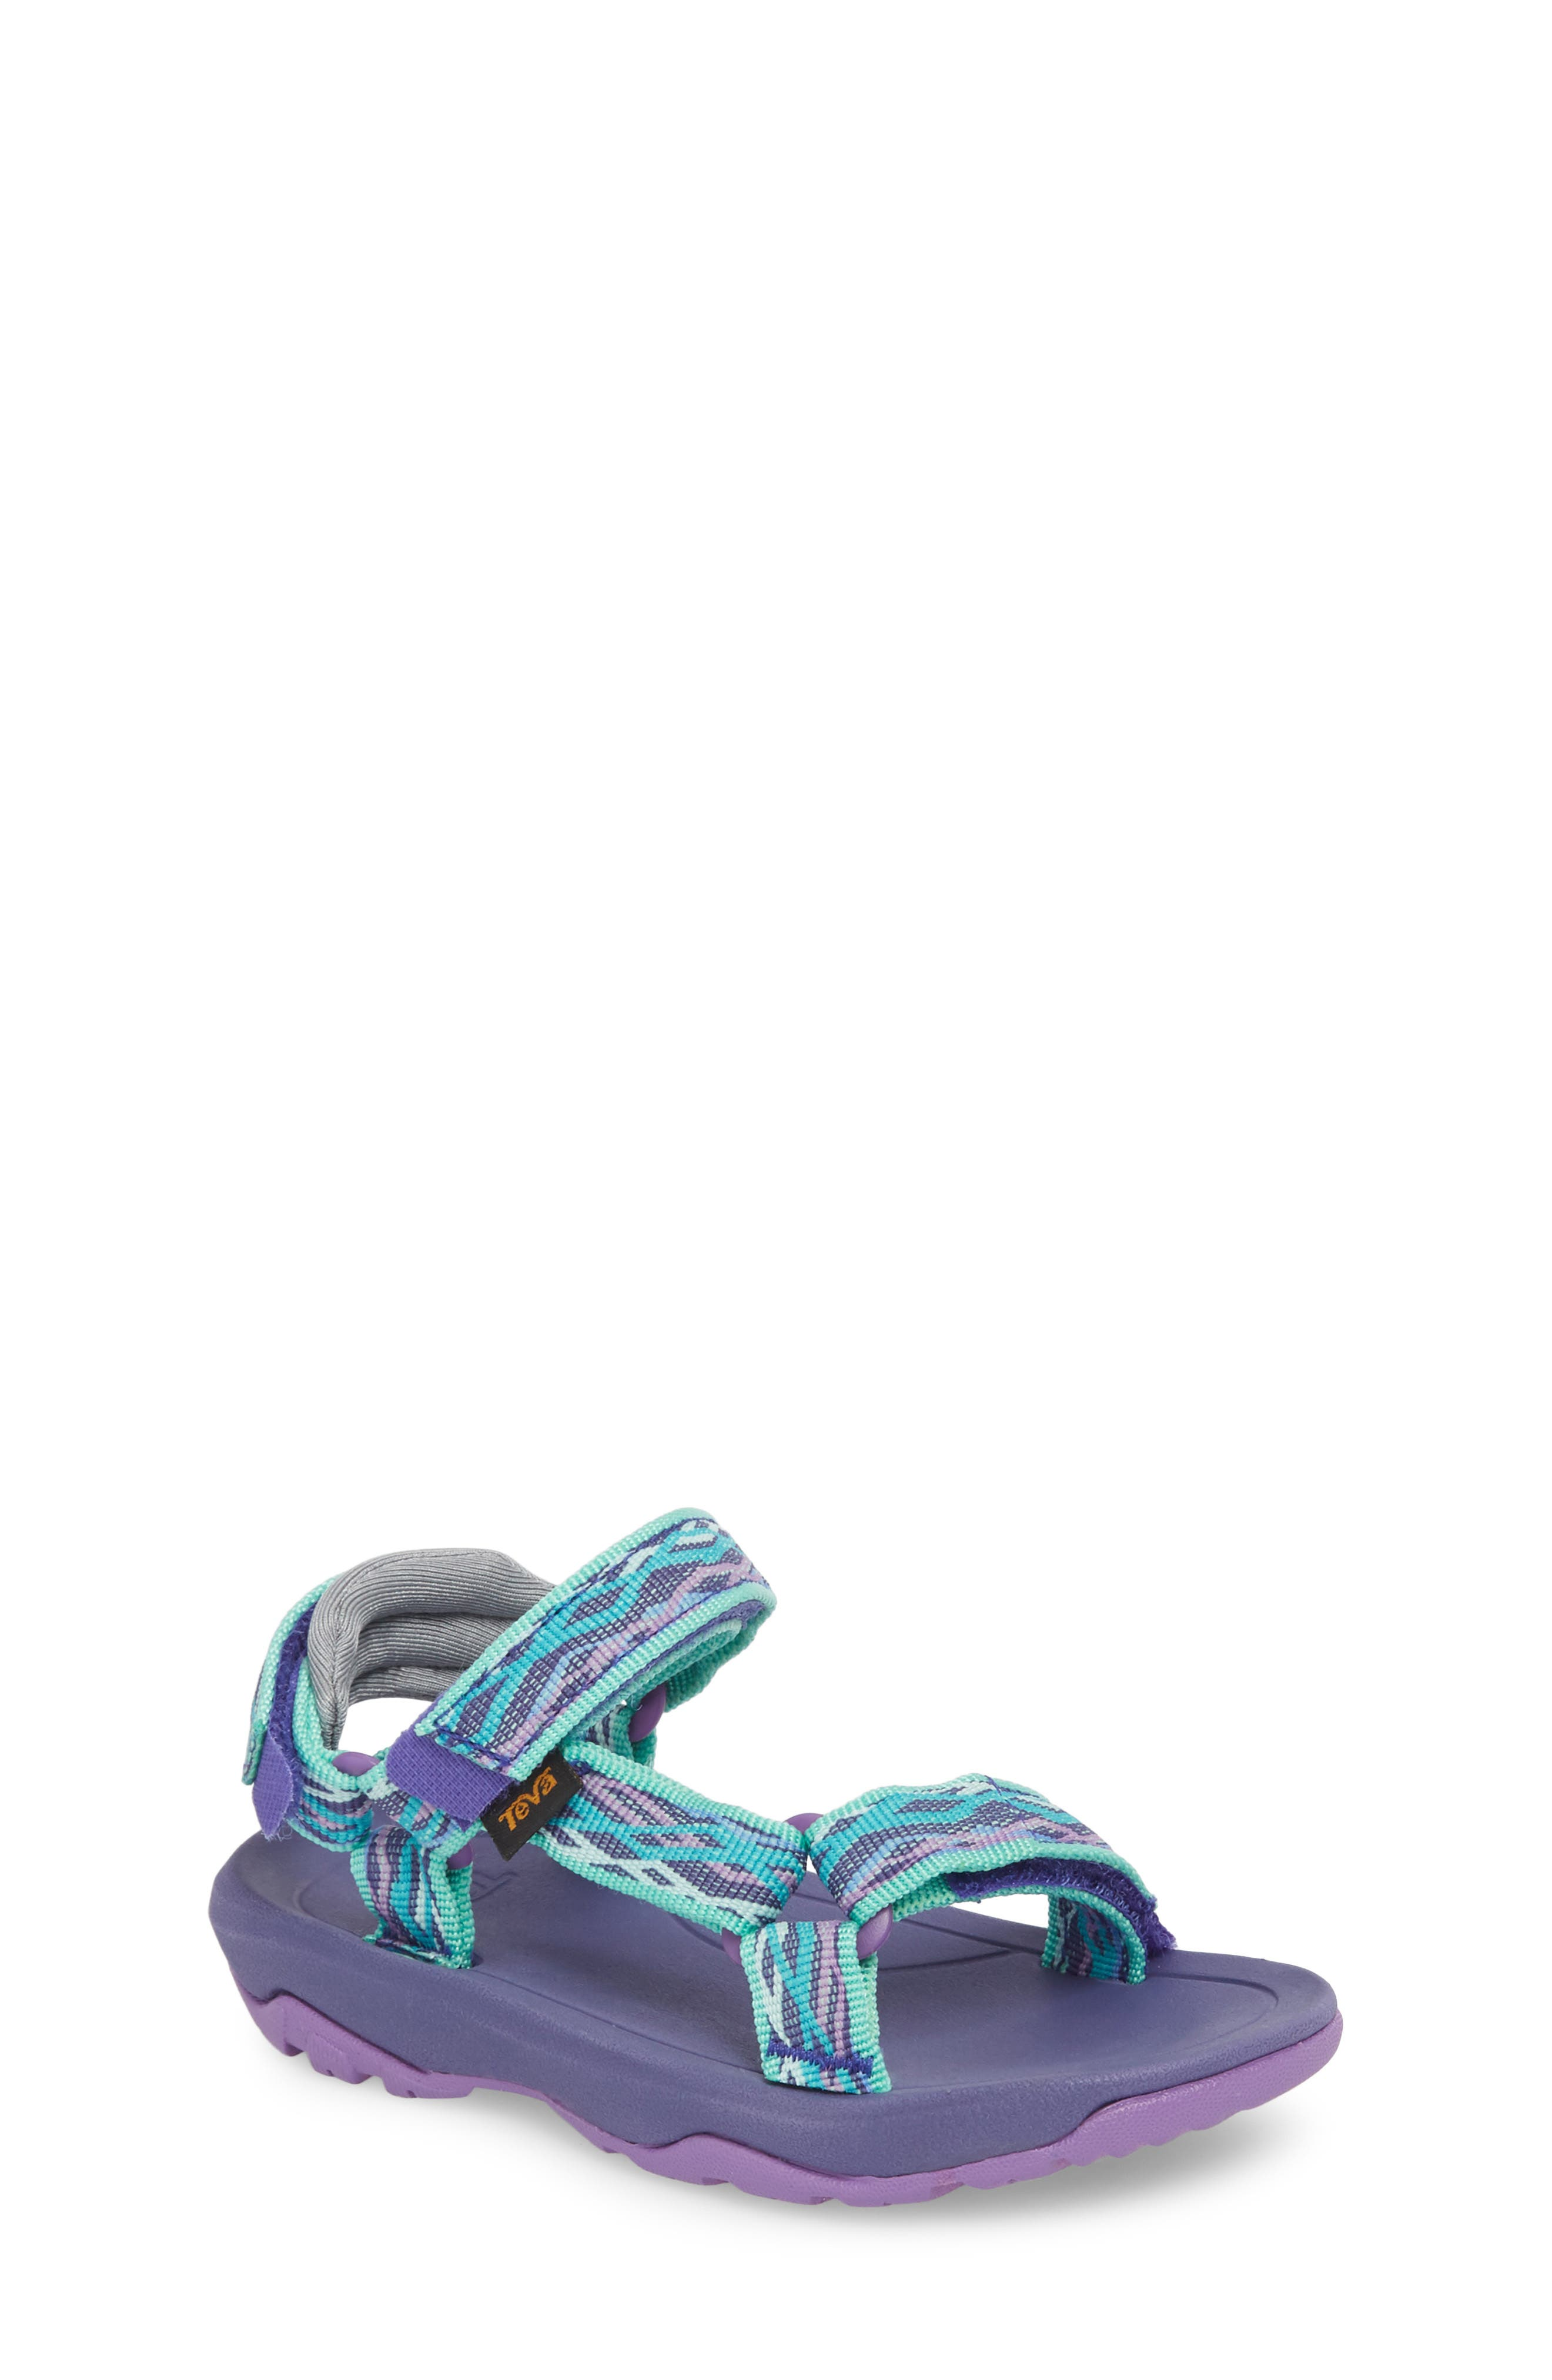 Teva Hurricane XLT 2 Sandal (Baby, Walker, Toddler, Little Kid & Big Kid)